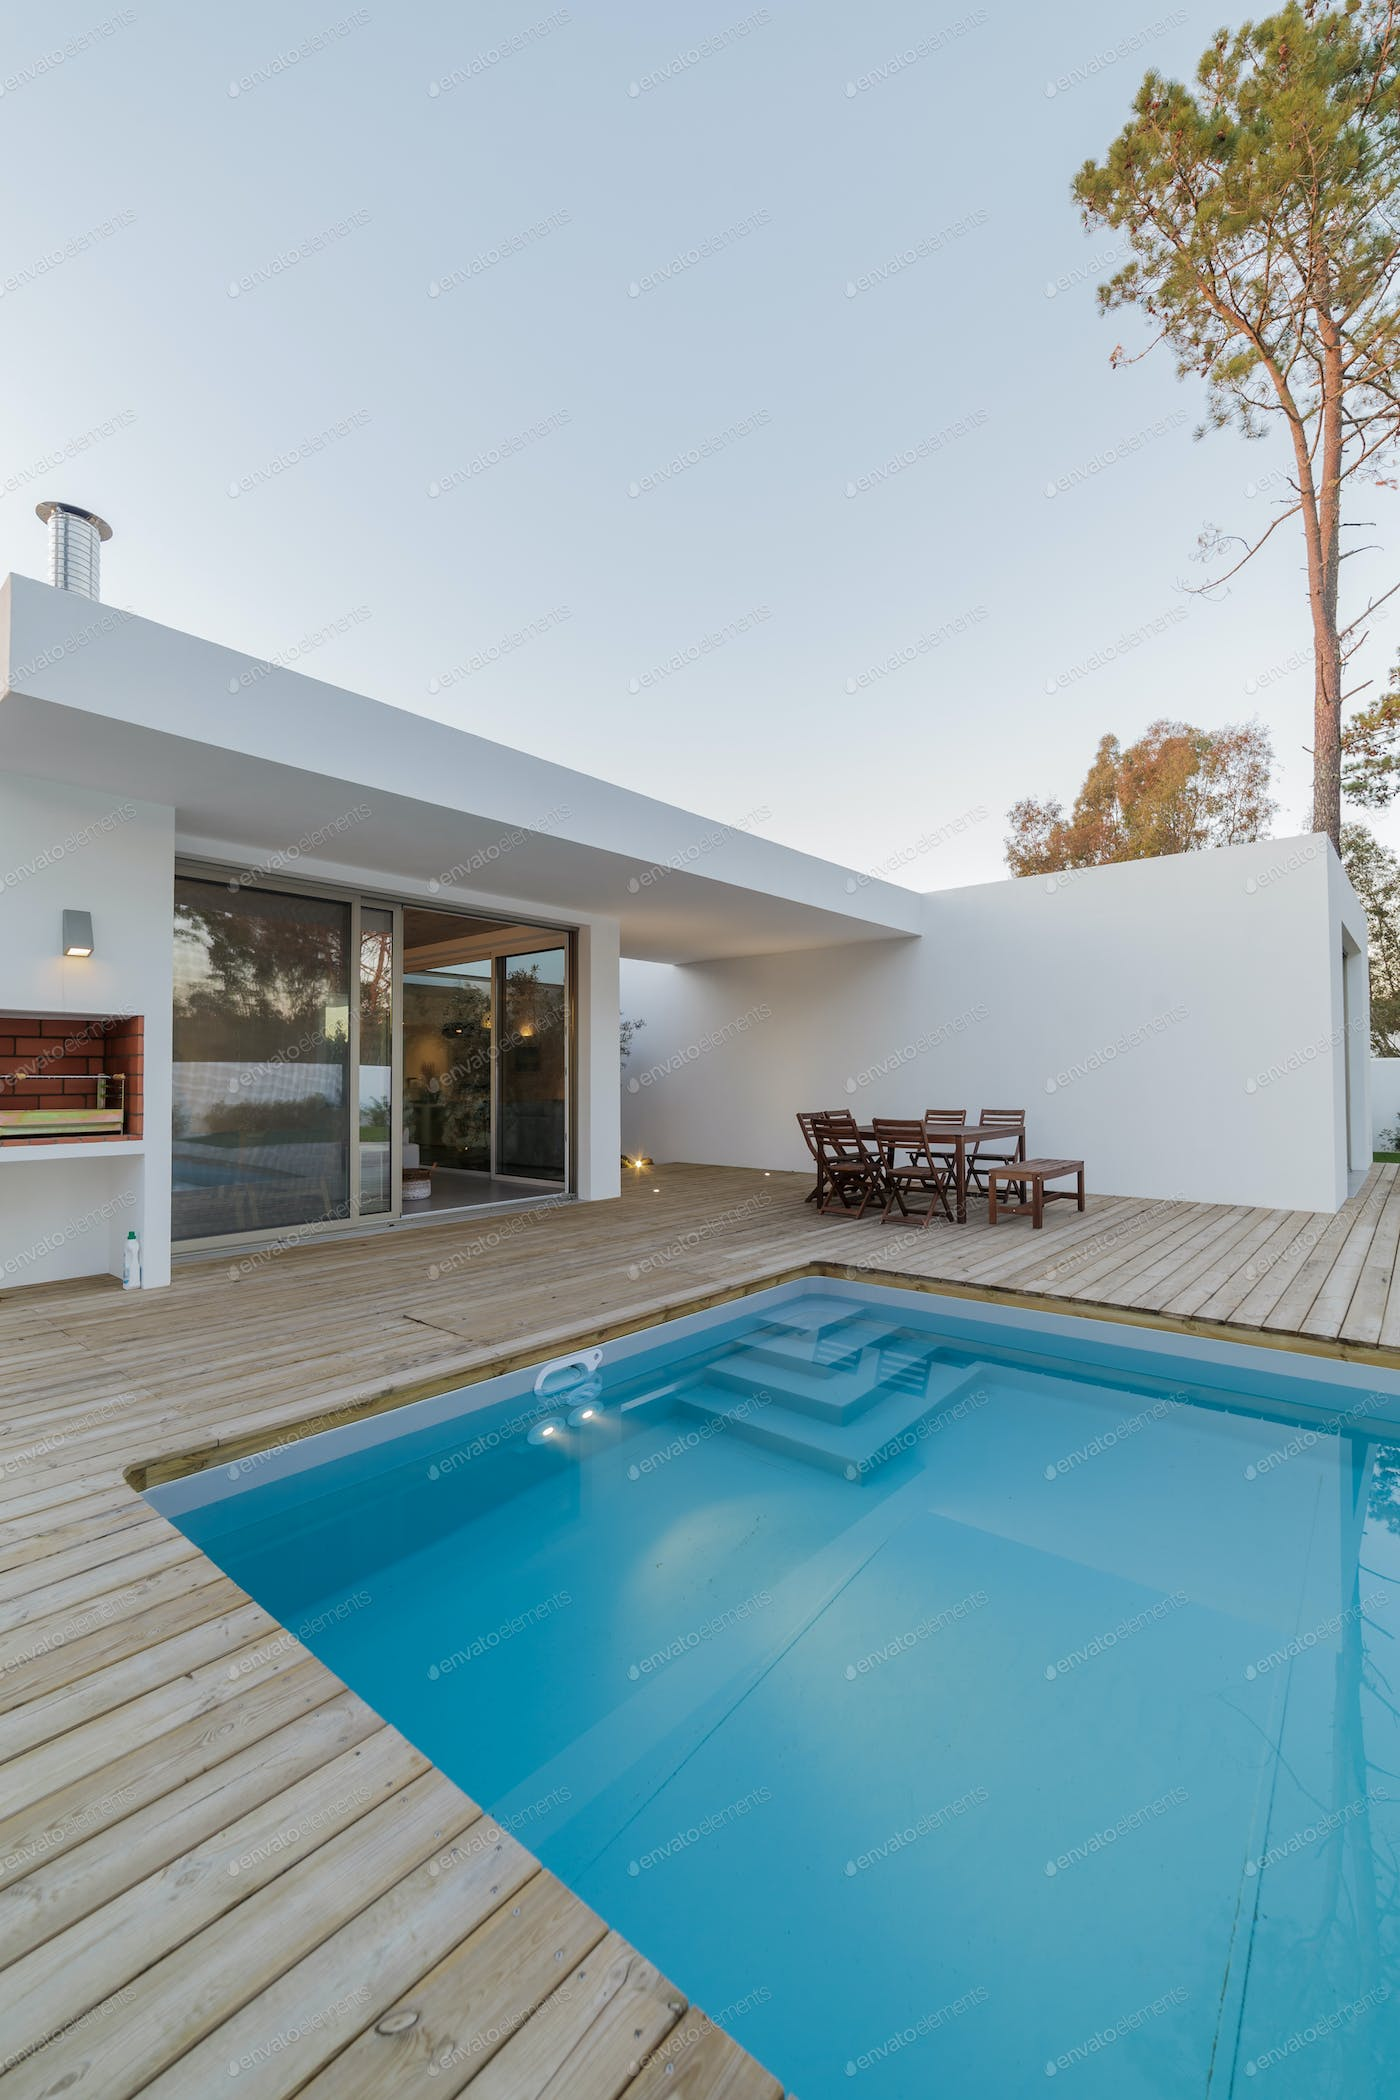 Modern House With Garden Swimming Pool And Wooden Deck Photo